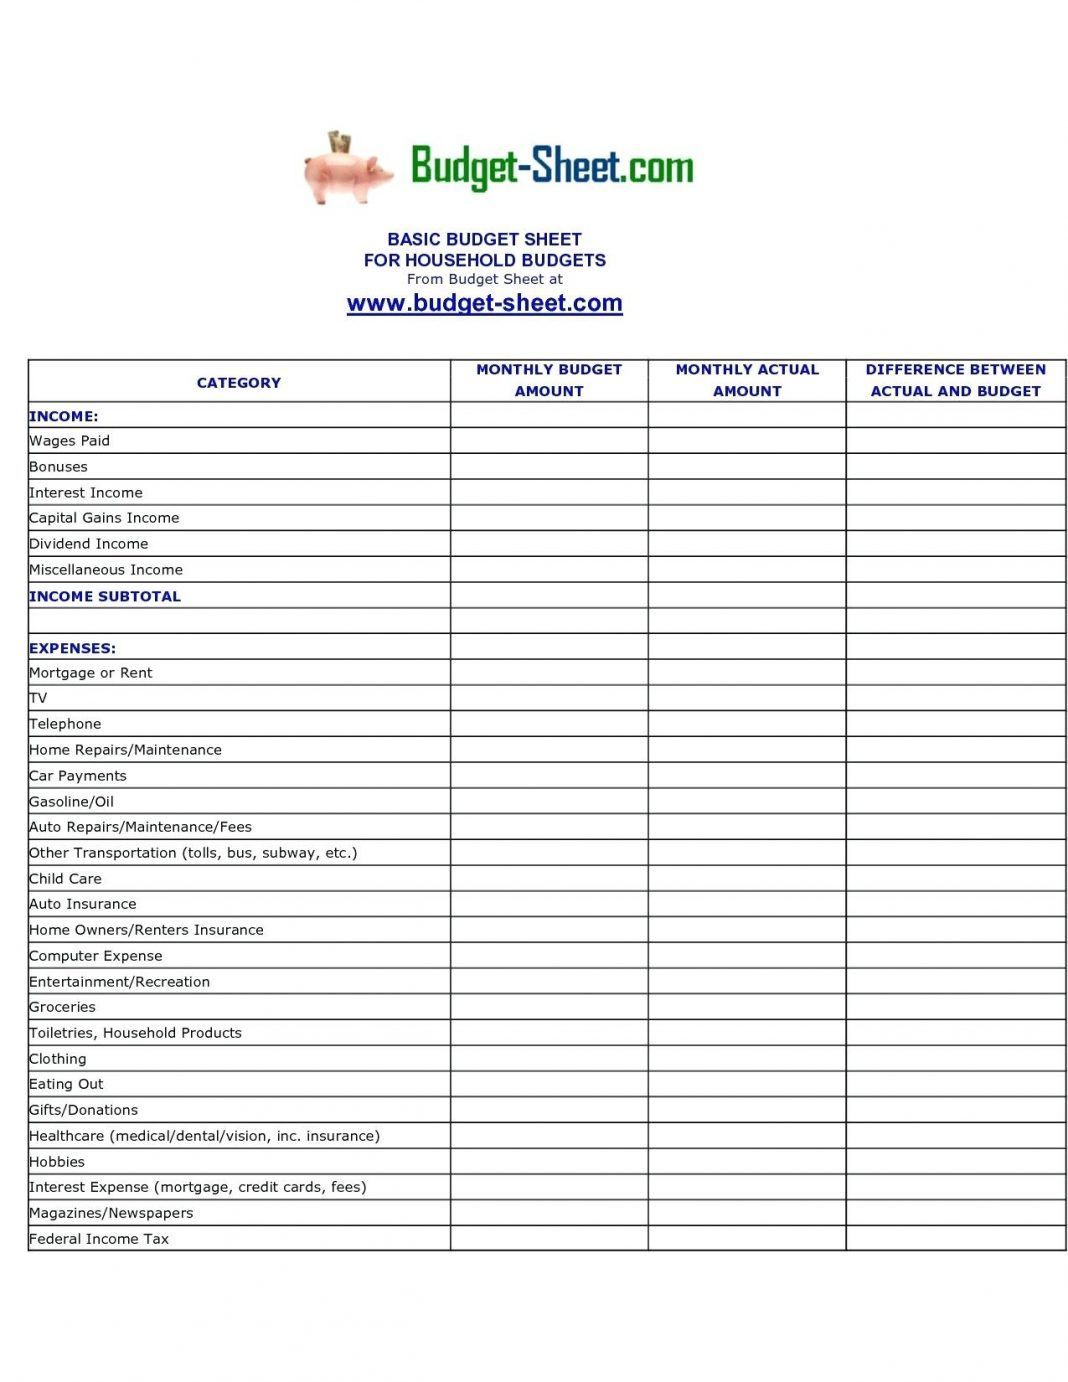 Family Budget Template Weekly Monthly Google Sheets Inside Usmc Meal Card Template Sample Pr Family Budget Template Budgeting Worksheets Monthly Budget Excel